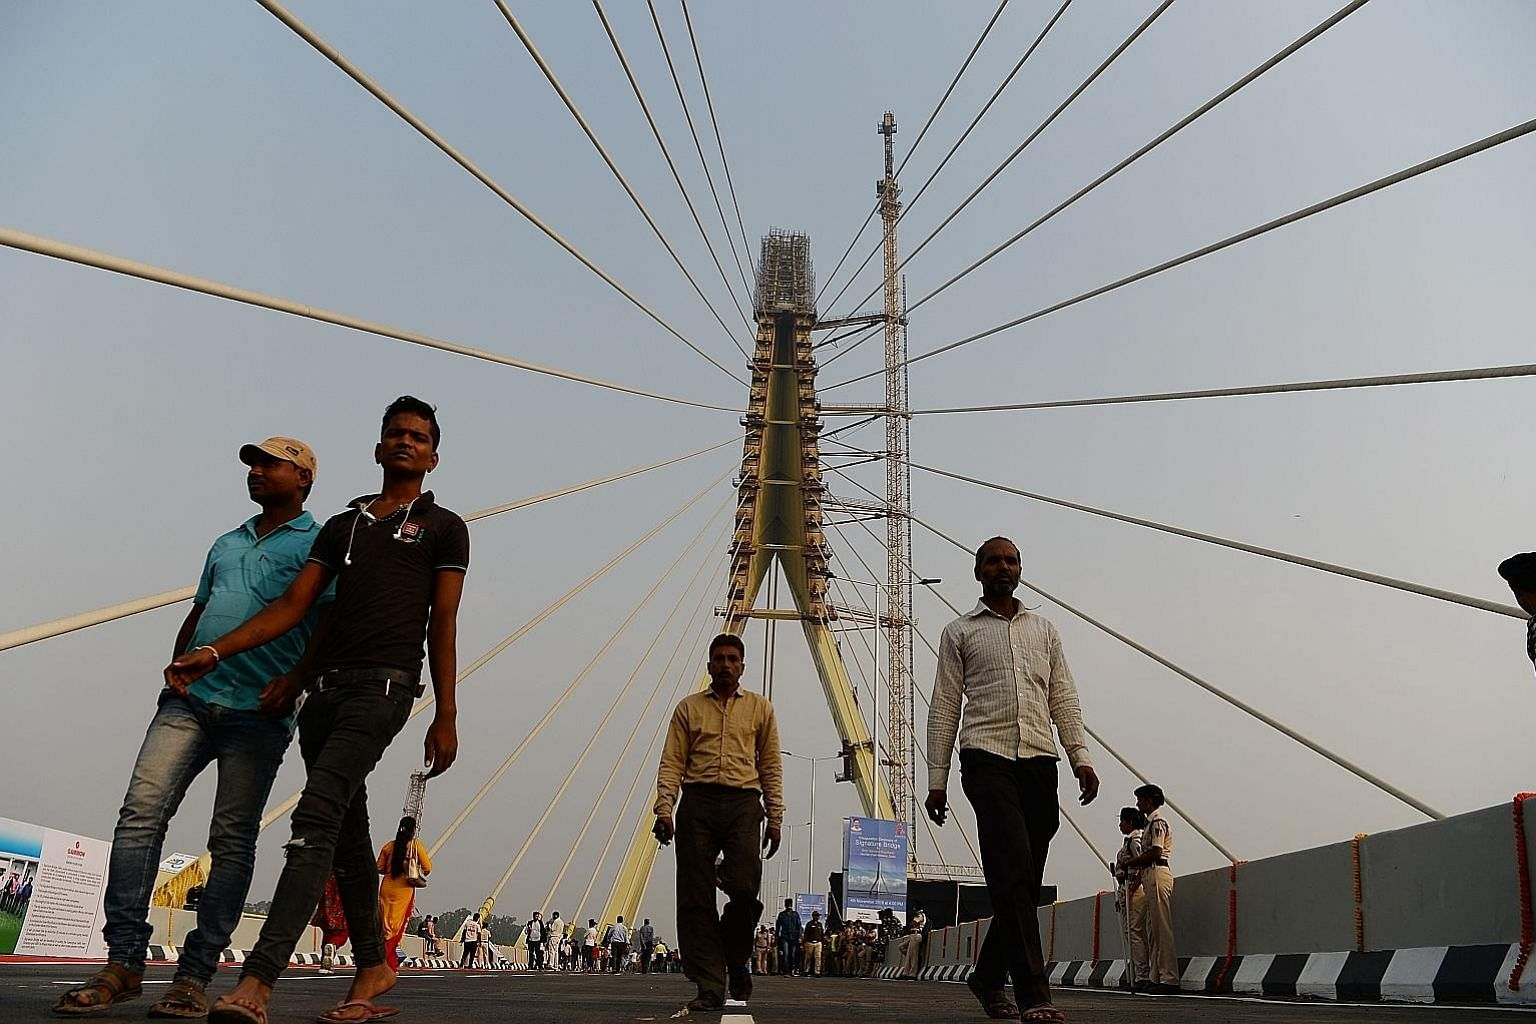 The Signature Bridge, a new landmark in Delhi. India's economic growth positions the South Asian country as a realistic strategic partner for Gulf Cooperation Council states in the long run, says the writer, adding that it could also potentially emer